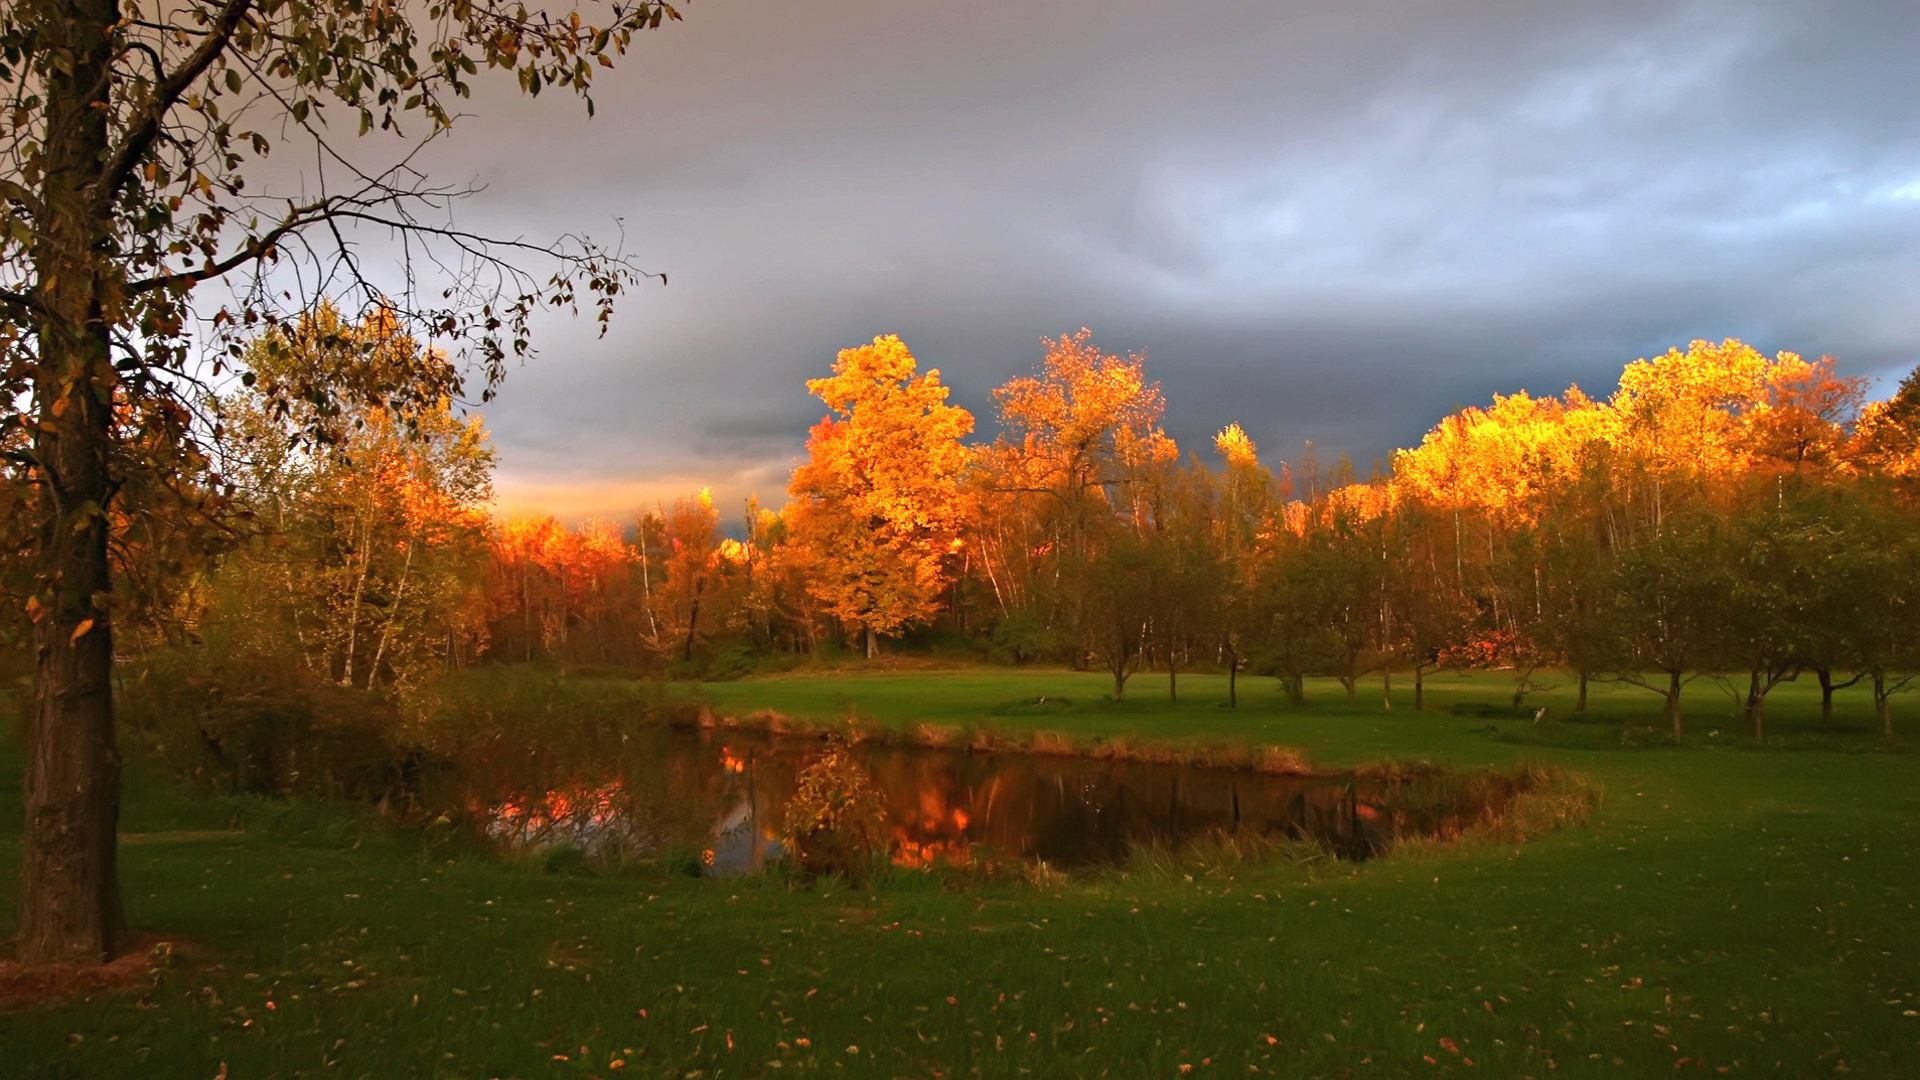 26670 download wallpaper Landscape, Trees, Autumn screensavers and pictures for free